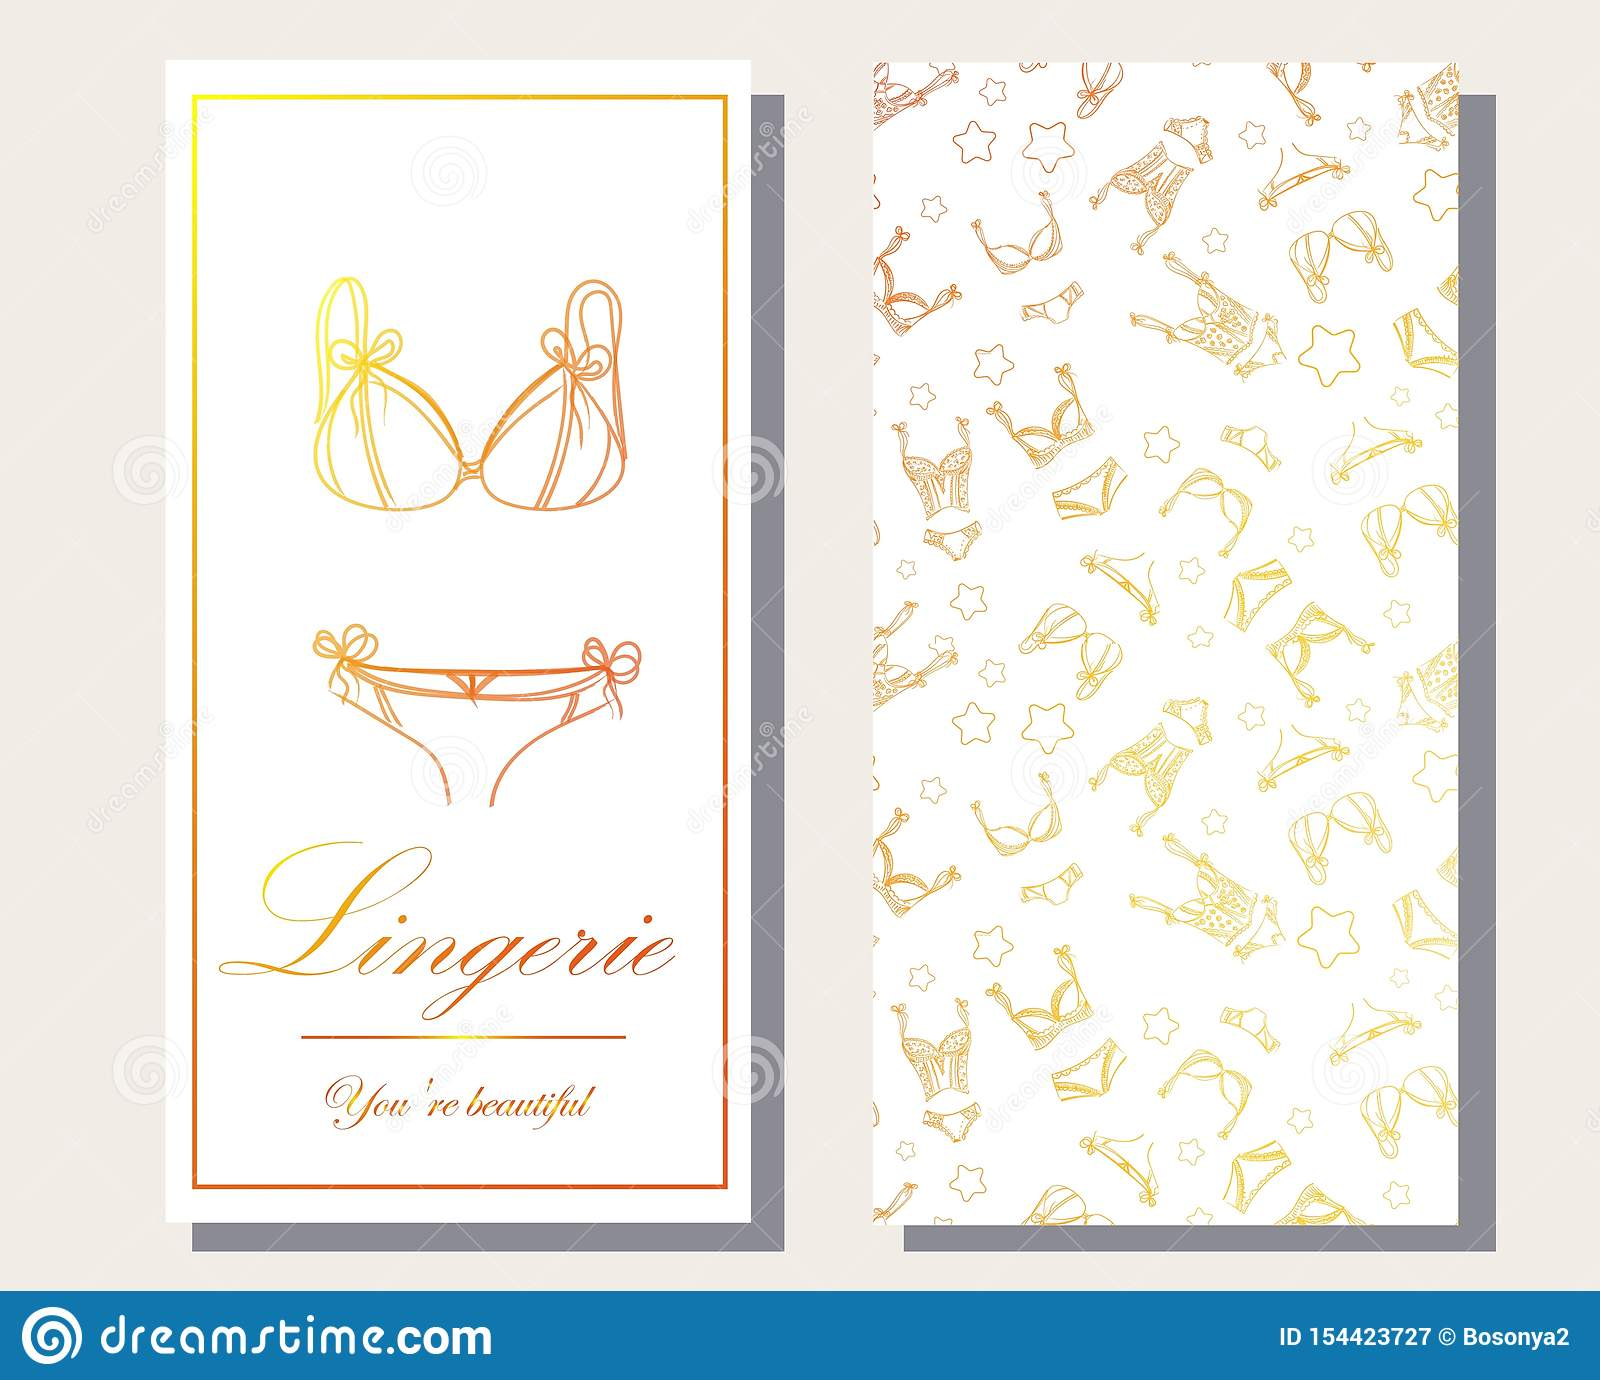 Logo and seamless pattern for Fashionable women`s lingerie collection, illustration sketch. BRAND STYLE of women`s lace